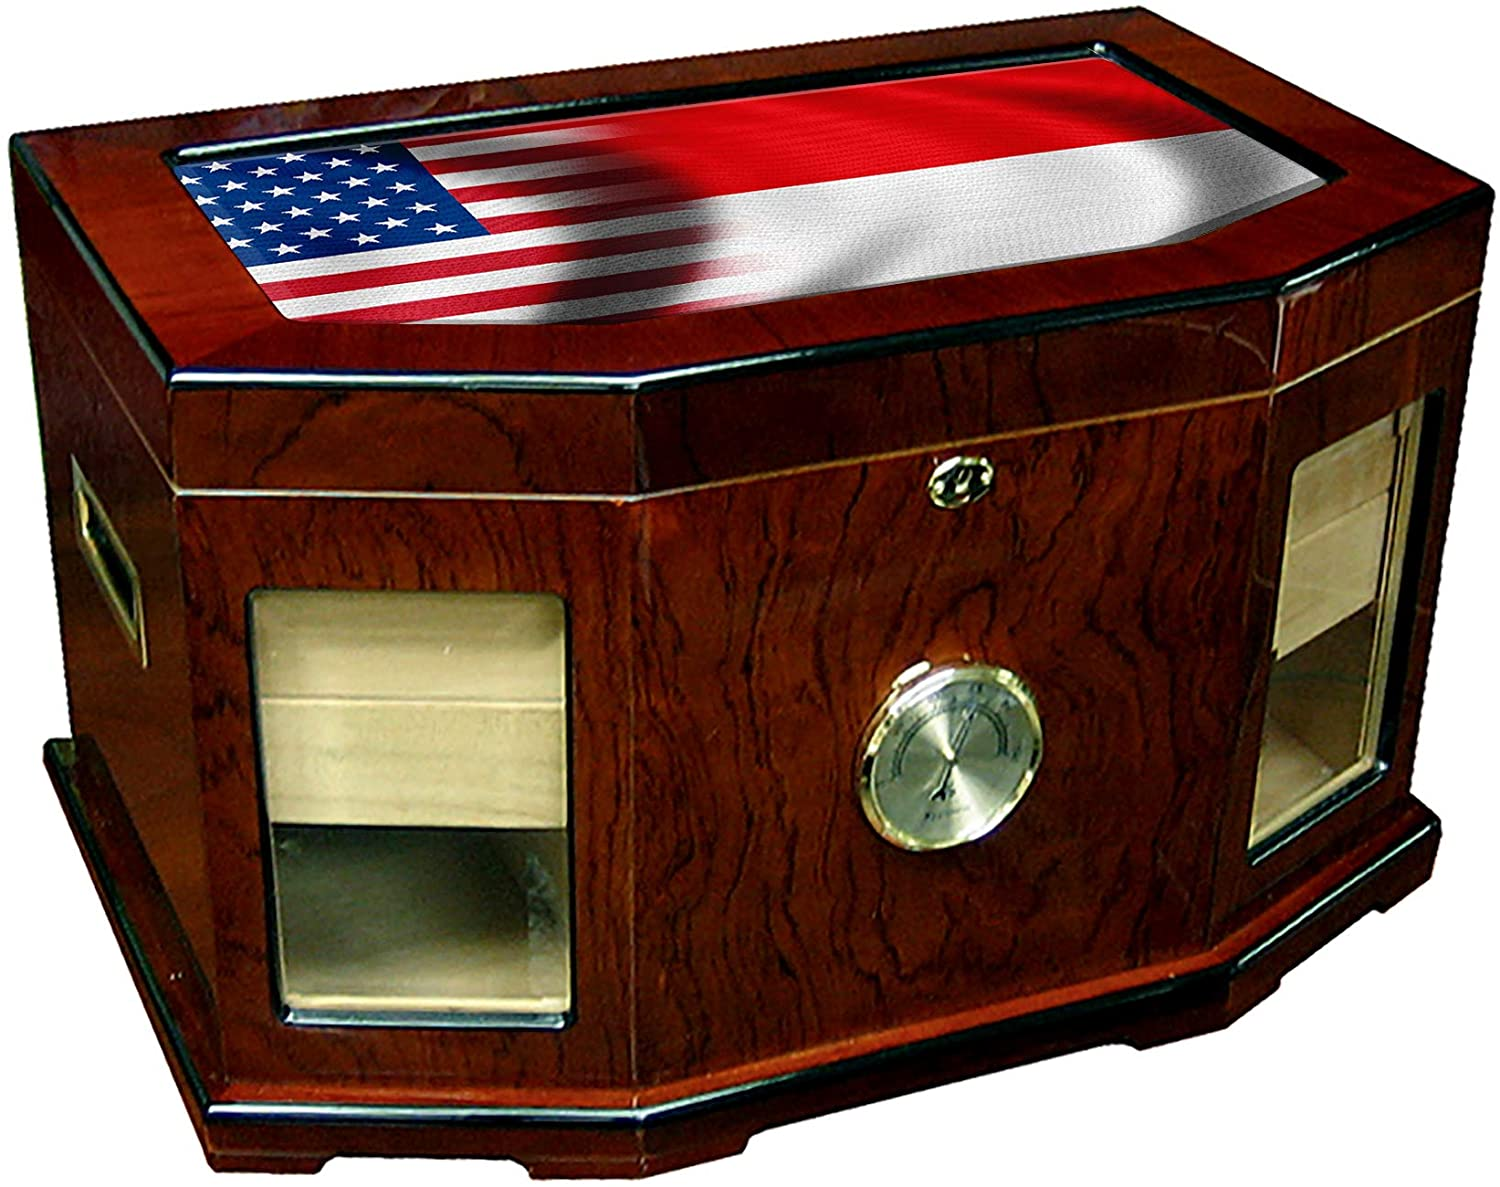 Large Premium Desktop Humidor - Glass Top - Flag of Monaco (Monegasque) - Waves with USA Flag - 300 Cigar Capacity - Cedar Lined with Two humidifiers & Large Front Mounted Hygrometer.